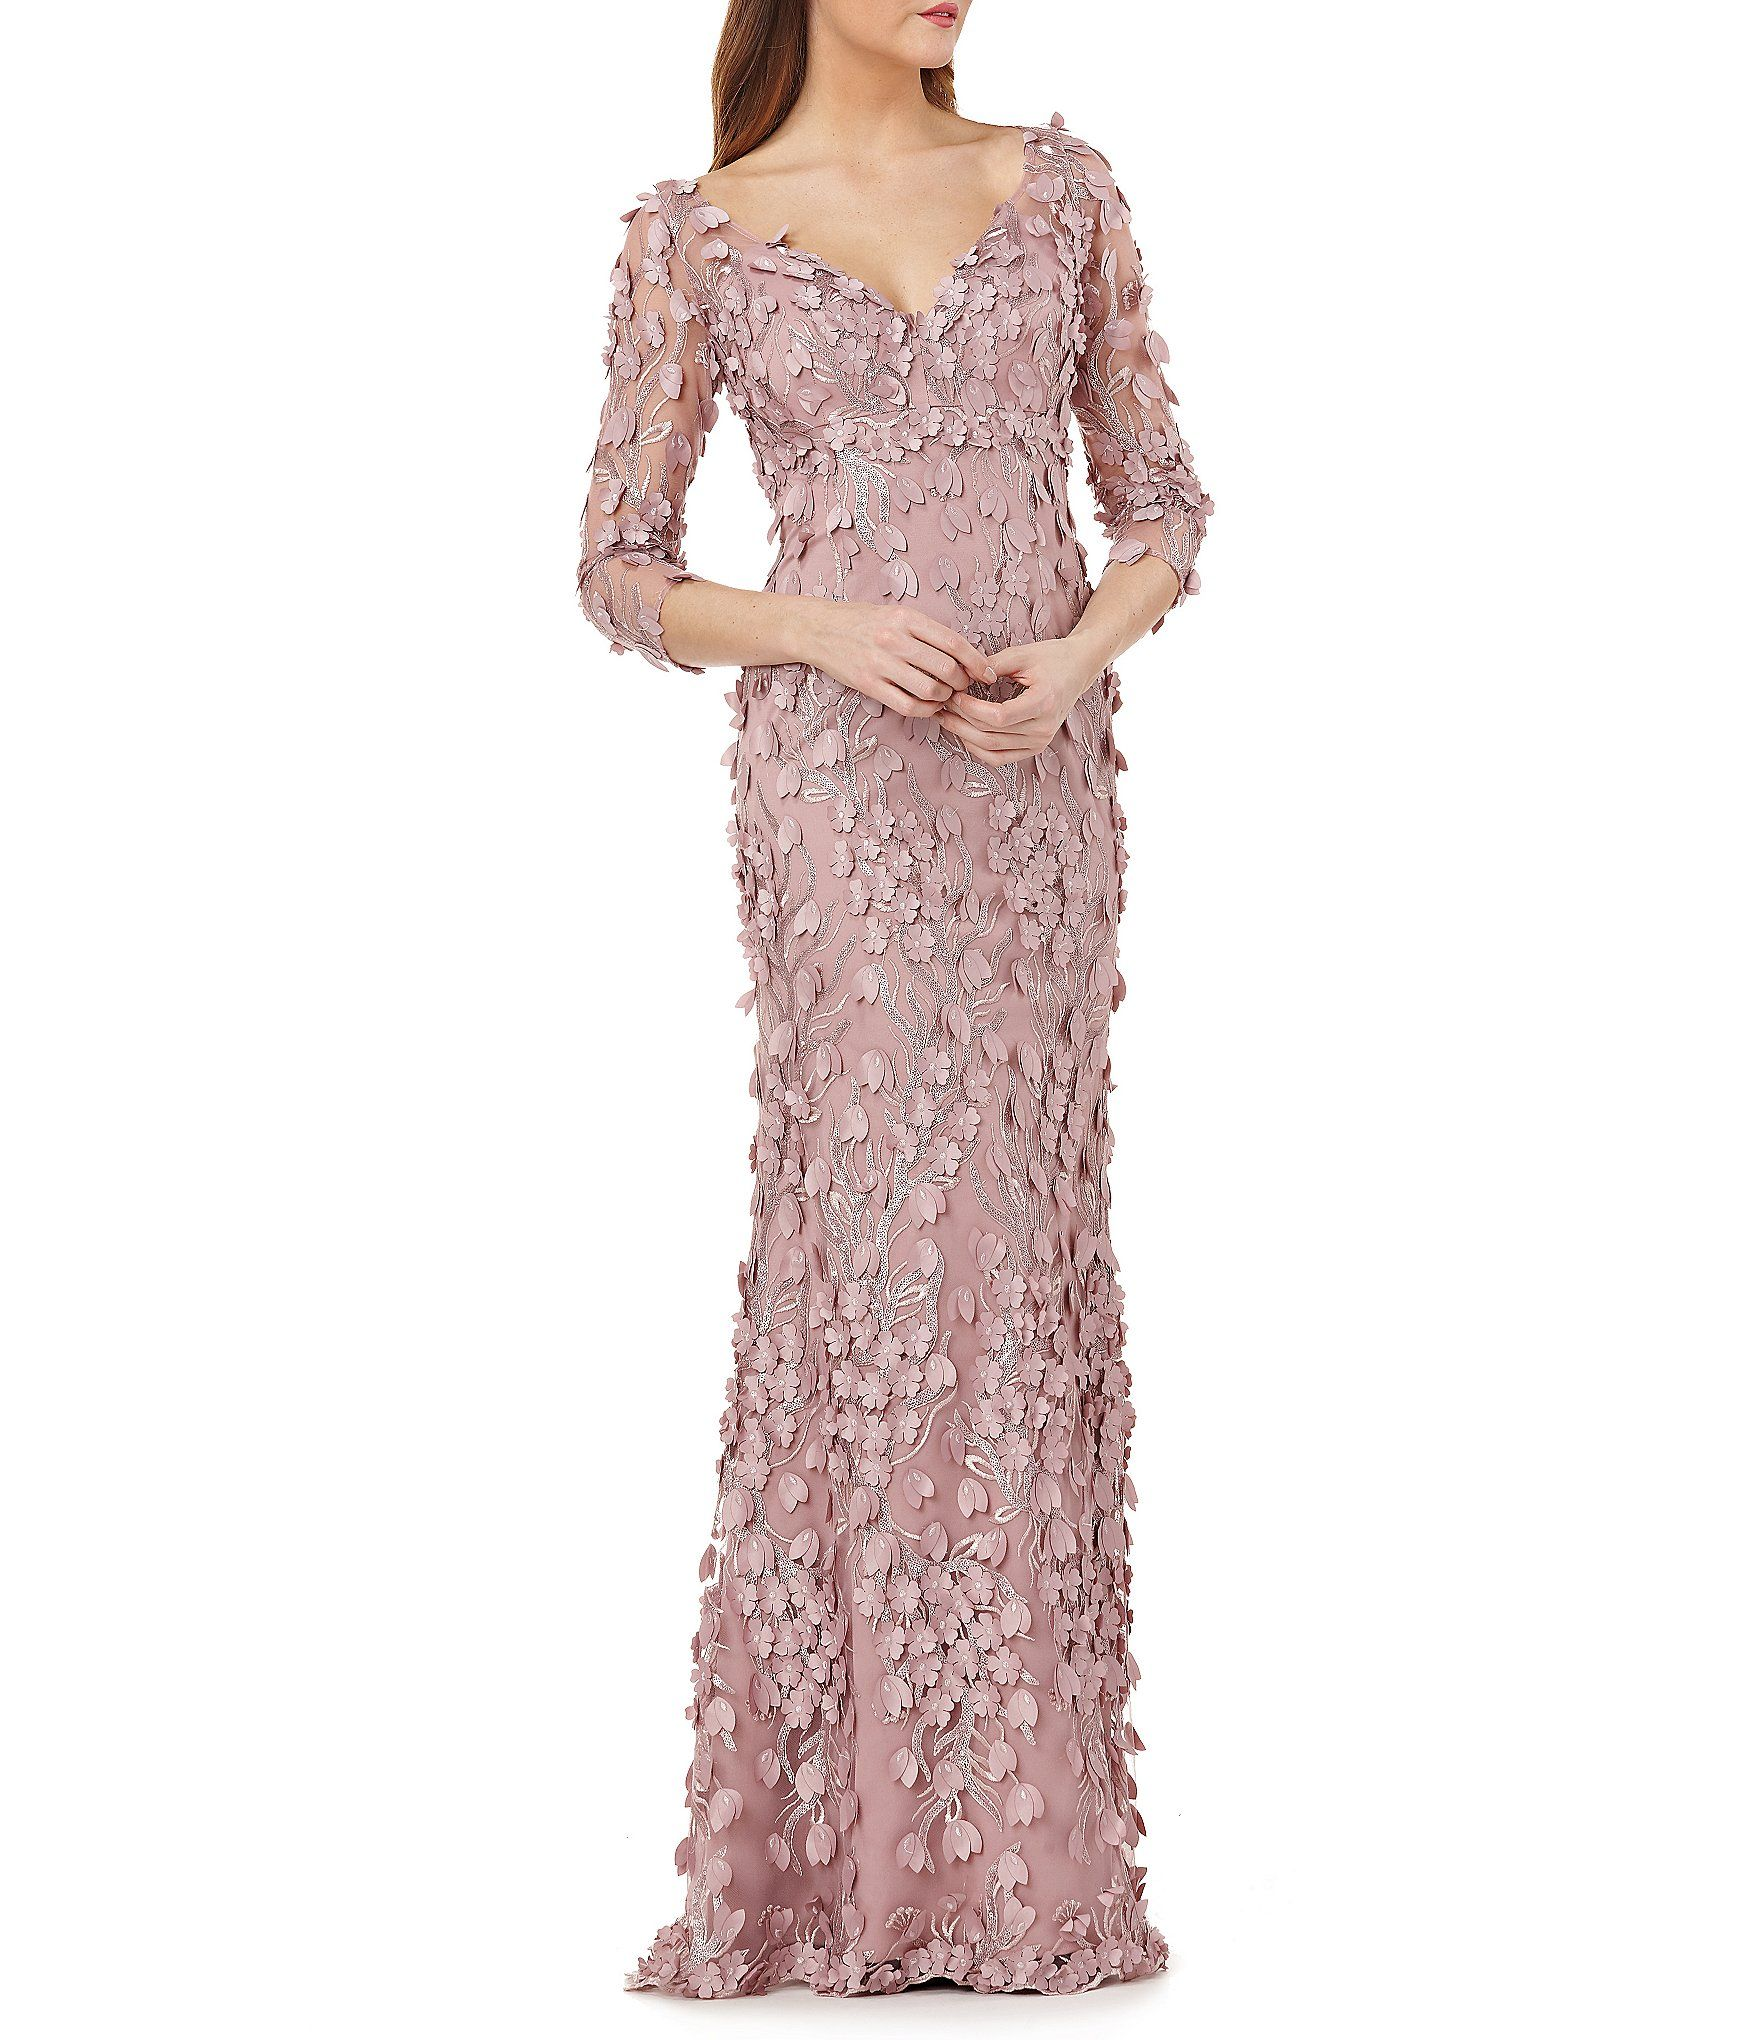 b313226cf8 Shop for Carmen Marc Valvo Infusion V Neck Fleurette Gown at Dillards.com.  Visit Dillards.com to find clothing, accessories, shoes, cosmetics & more.  The ...